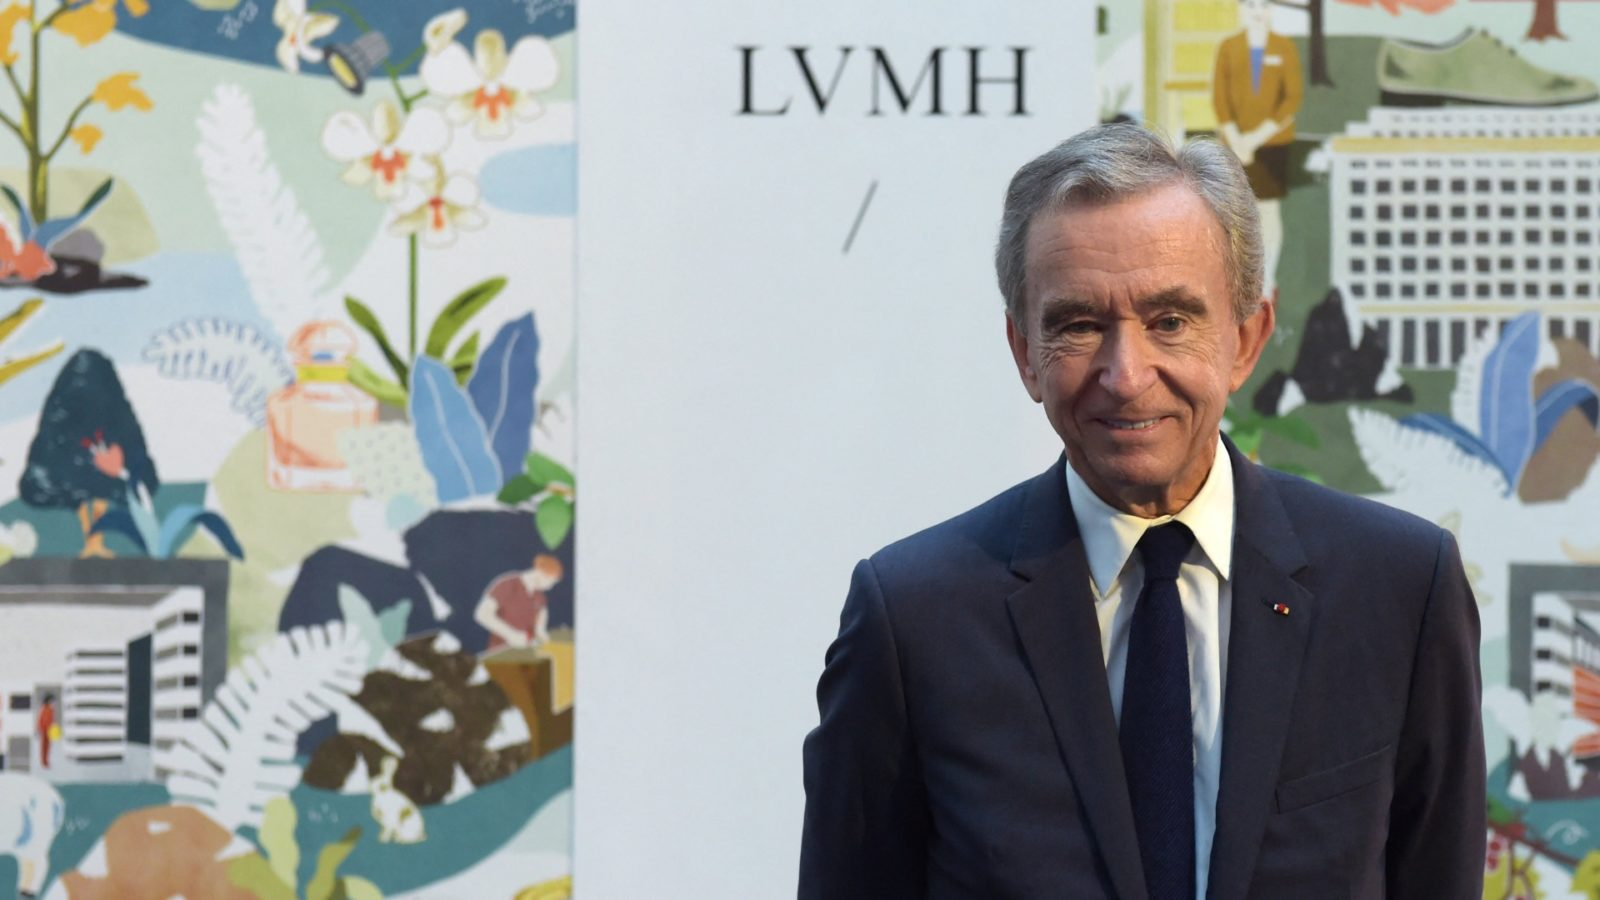 The expensive things LVMH CEO Bernard Arnault bought with his billions